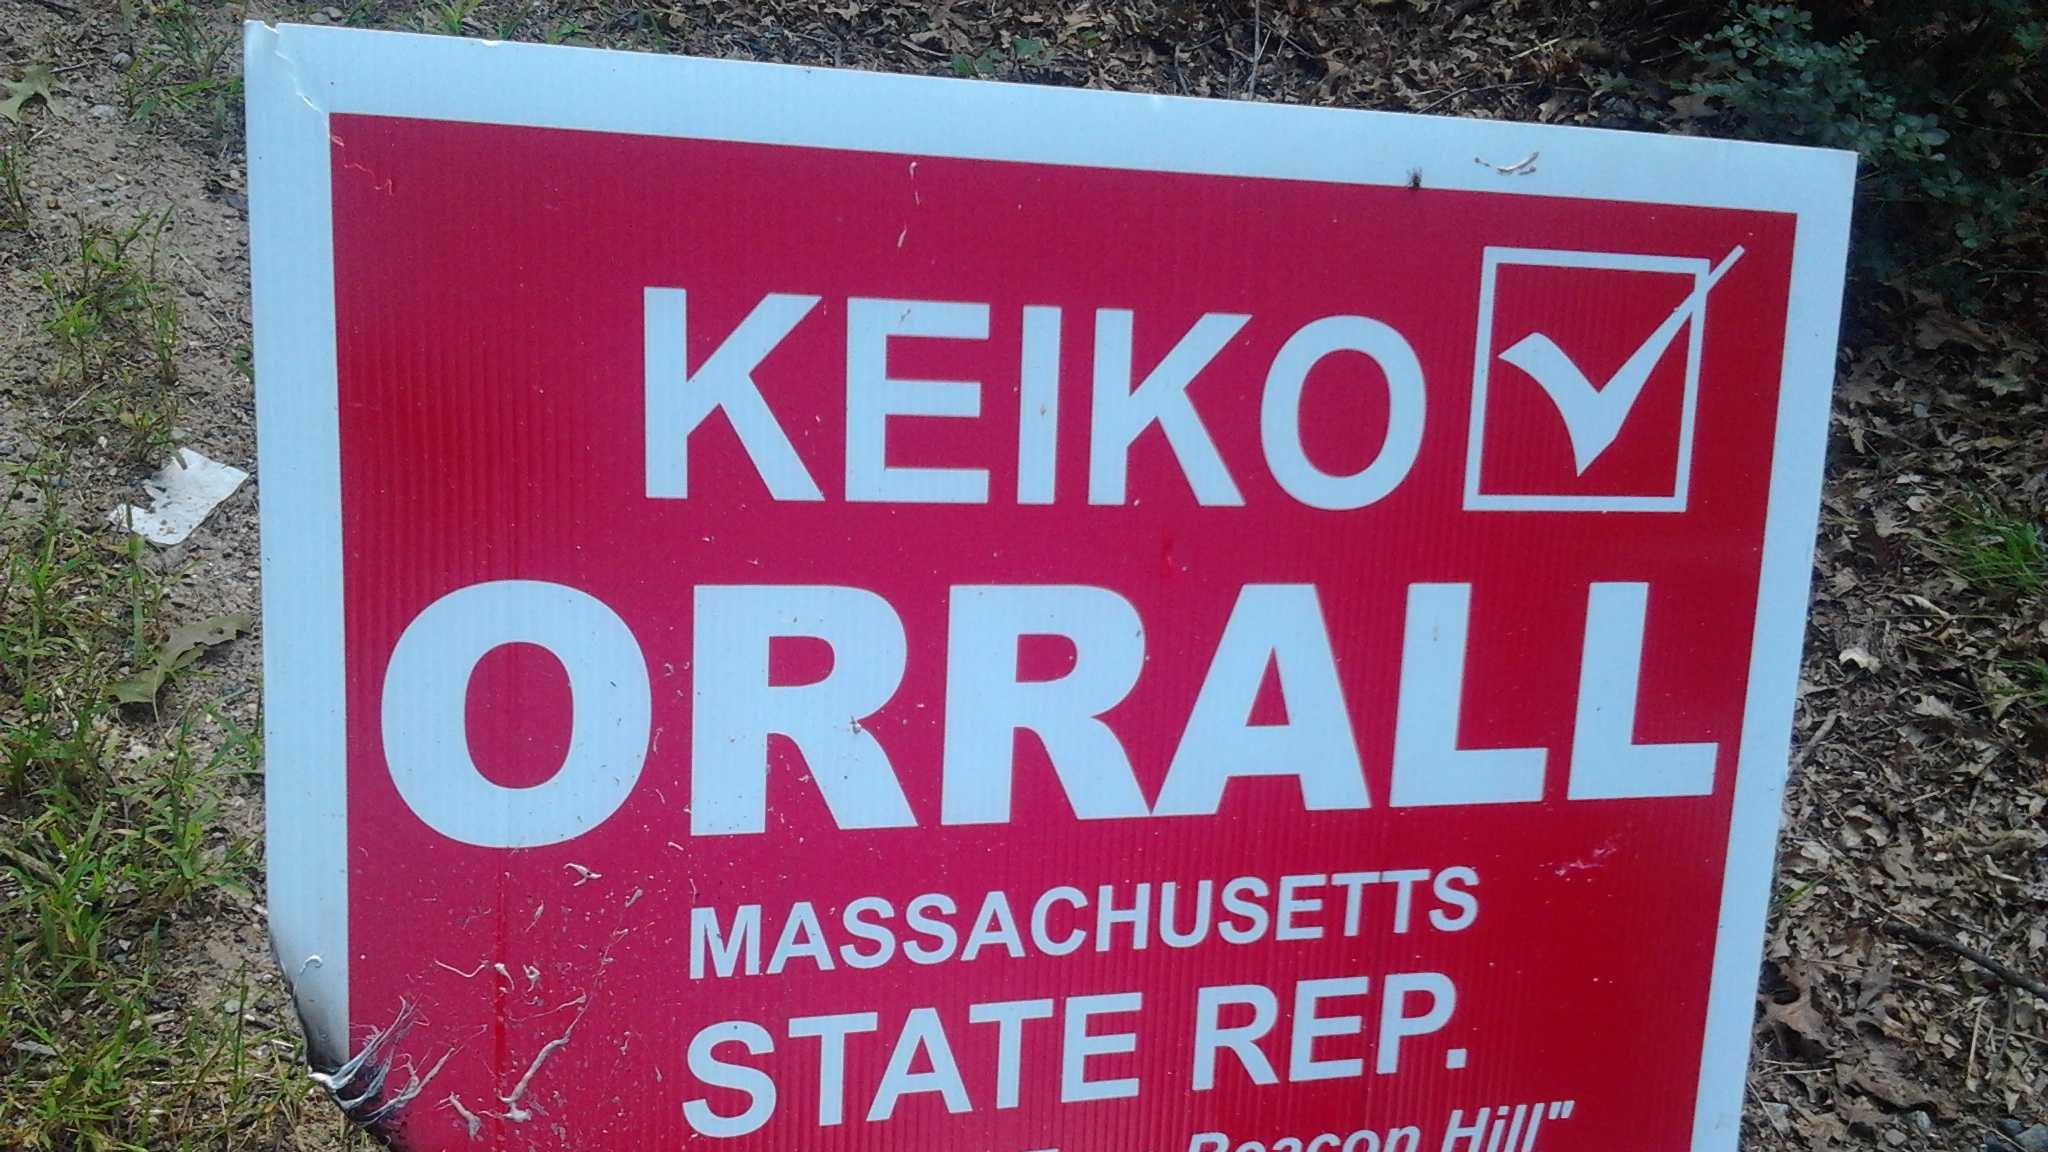 Vandals set fire to Mass. State Rep. Keiko Orrall's campaign sign.